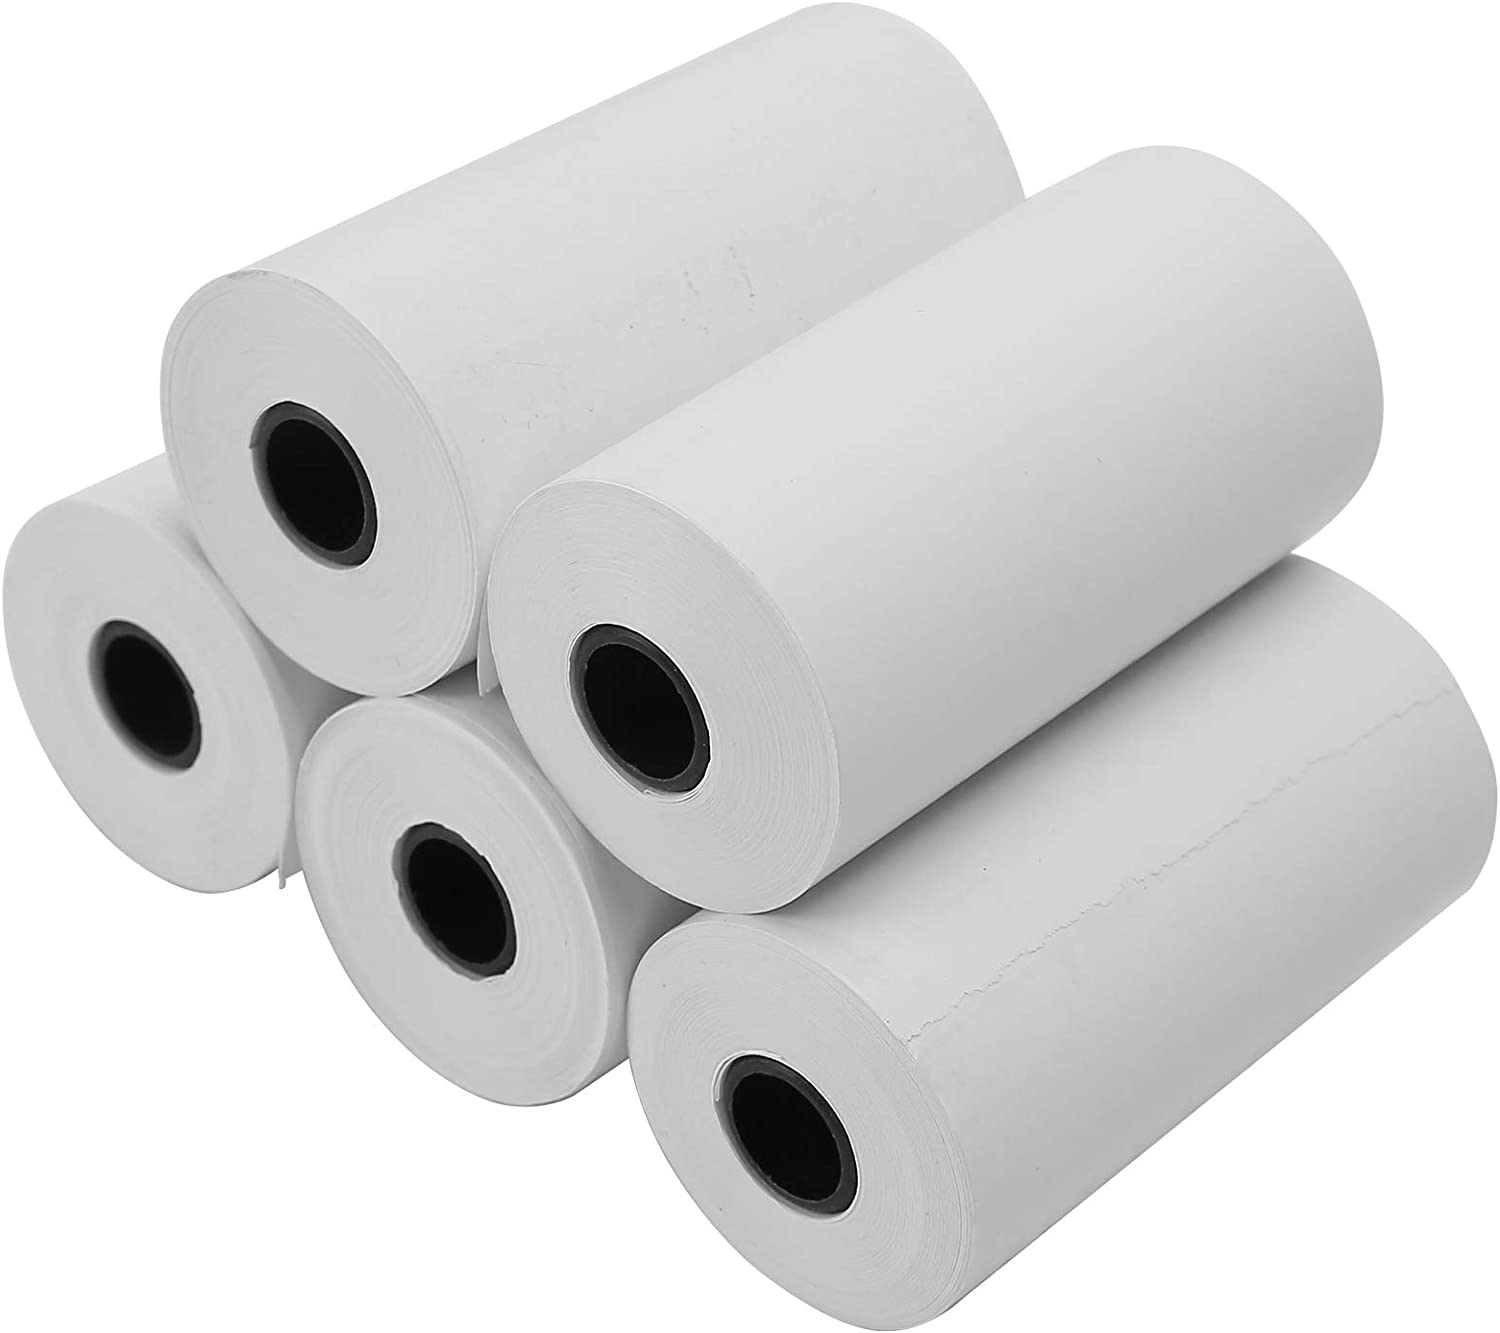 Agatige Seasonal Wrap Introduction 5 Rolls Thermal Receipt Paper Office Manufacturer OFFicial shop S Machine Roll for